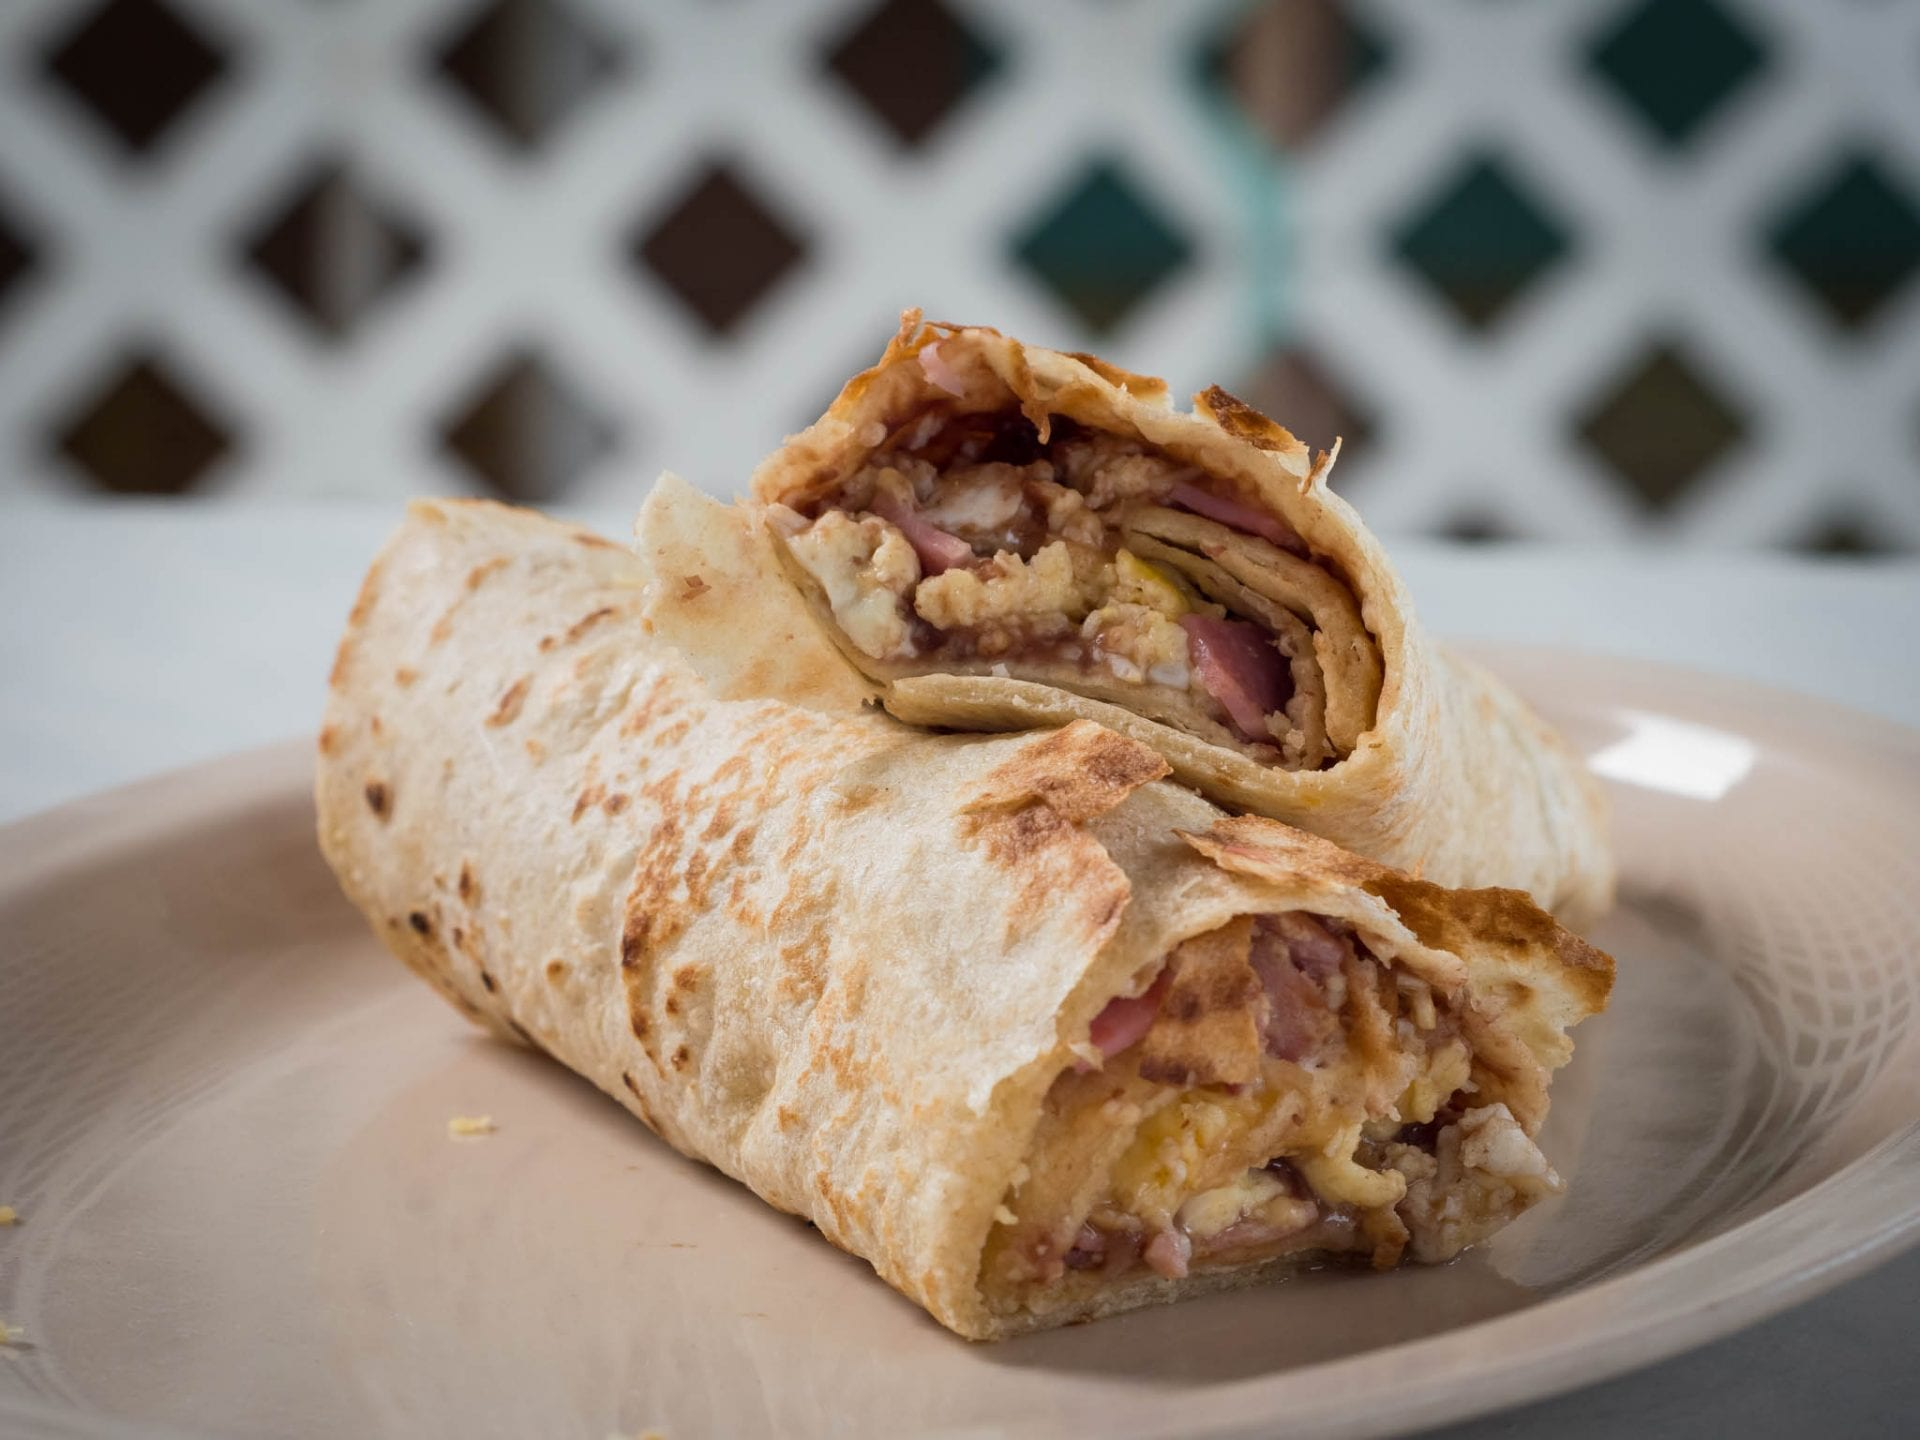 Belizean breakfast burrito